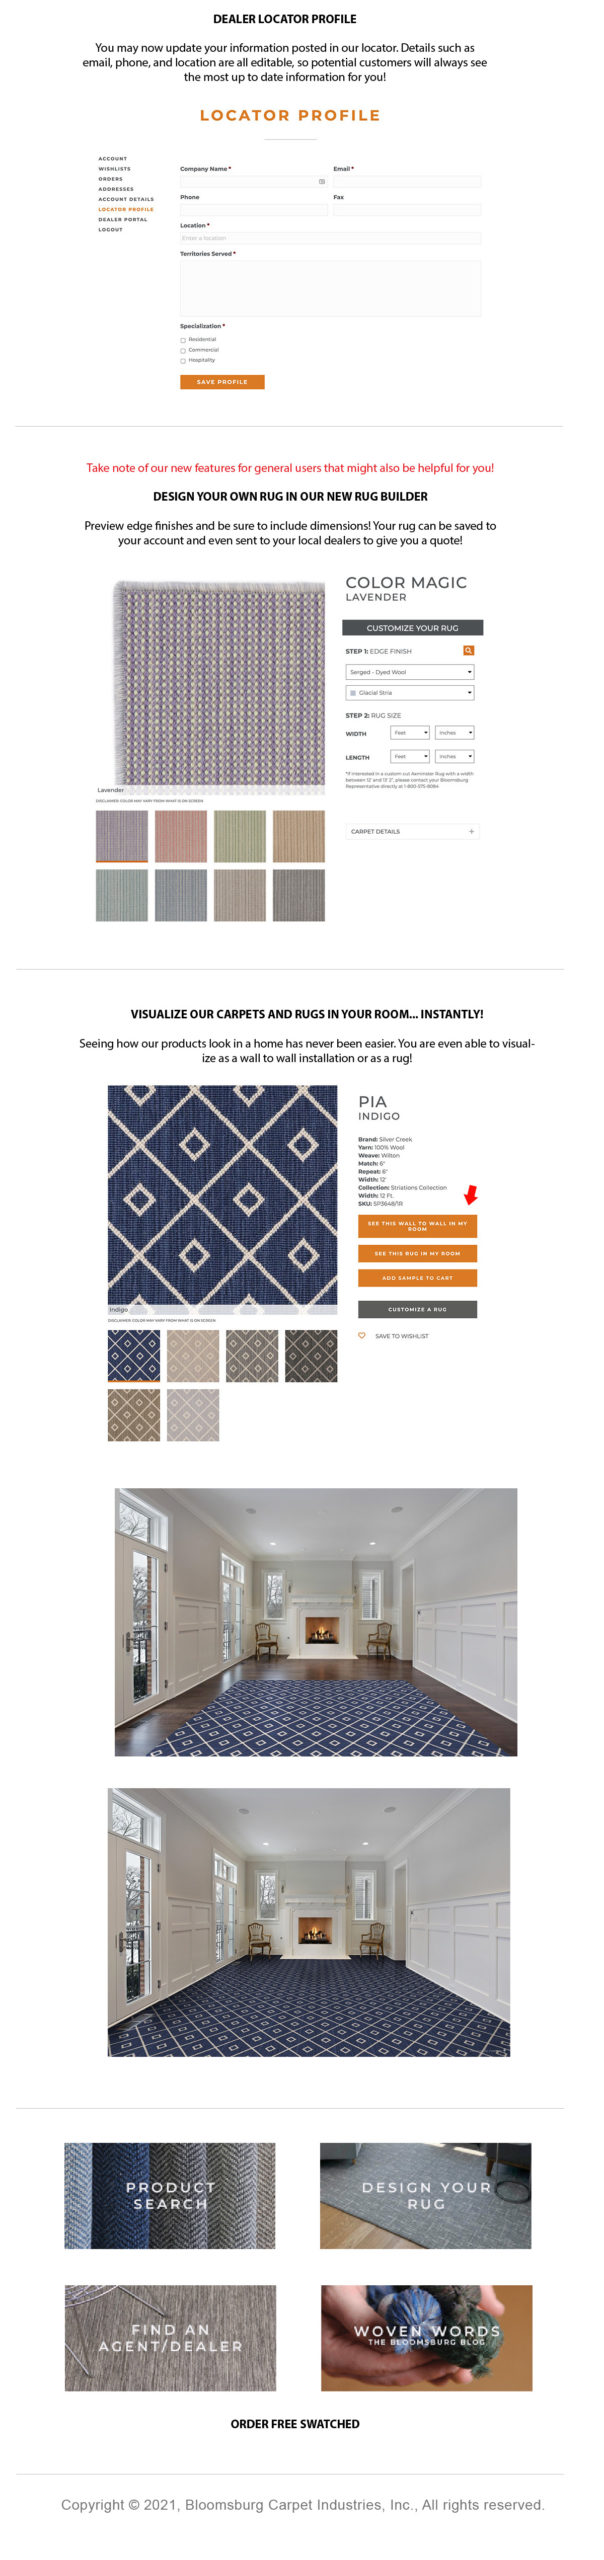 Bloomsburg Carpet | Our New Website is Live! announcement image #2